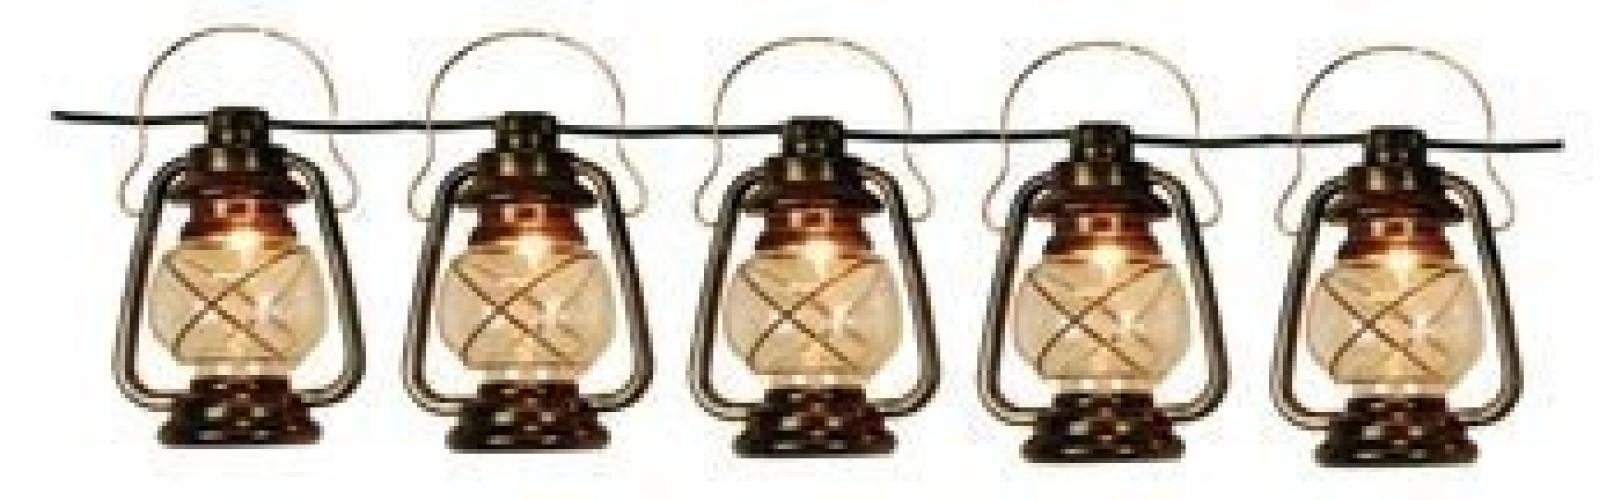 Patio String Lights Oil Lantern Style Indoor Outdoor   Walmart Regarding Outdoor Oil Lanterns For Patio (Photo 8 of 20)